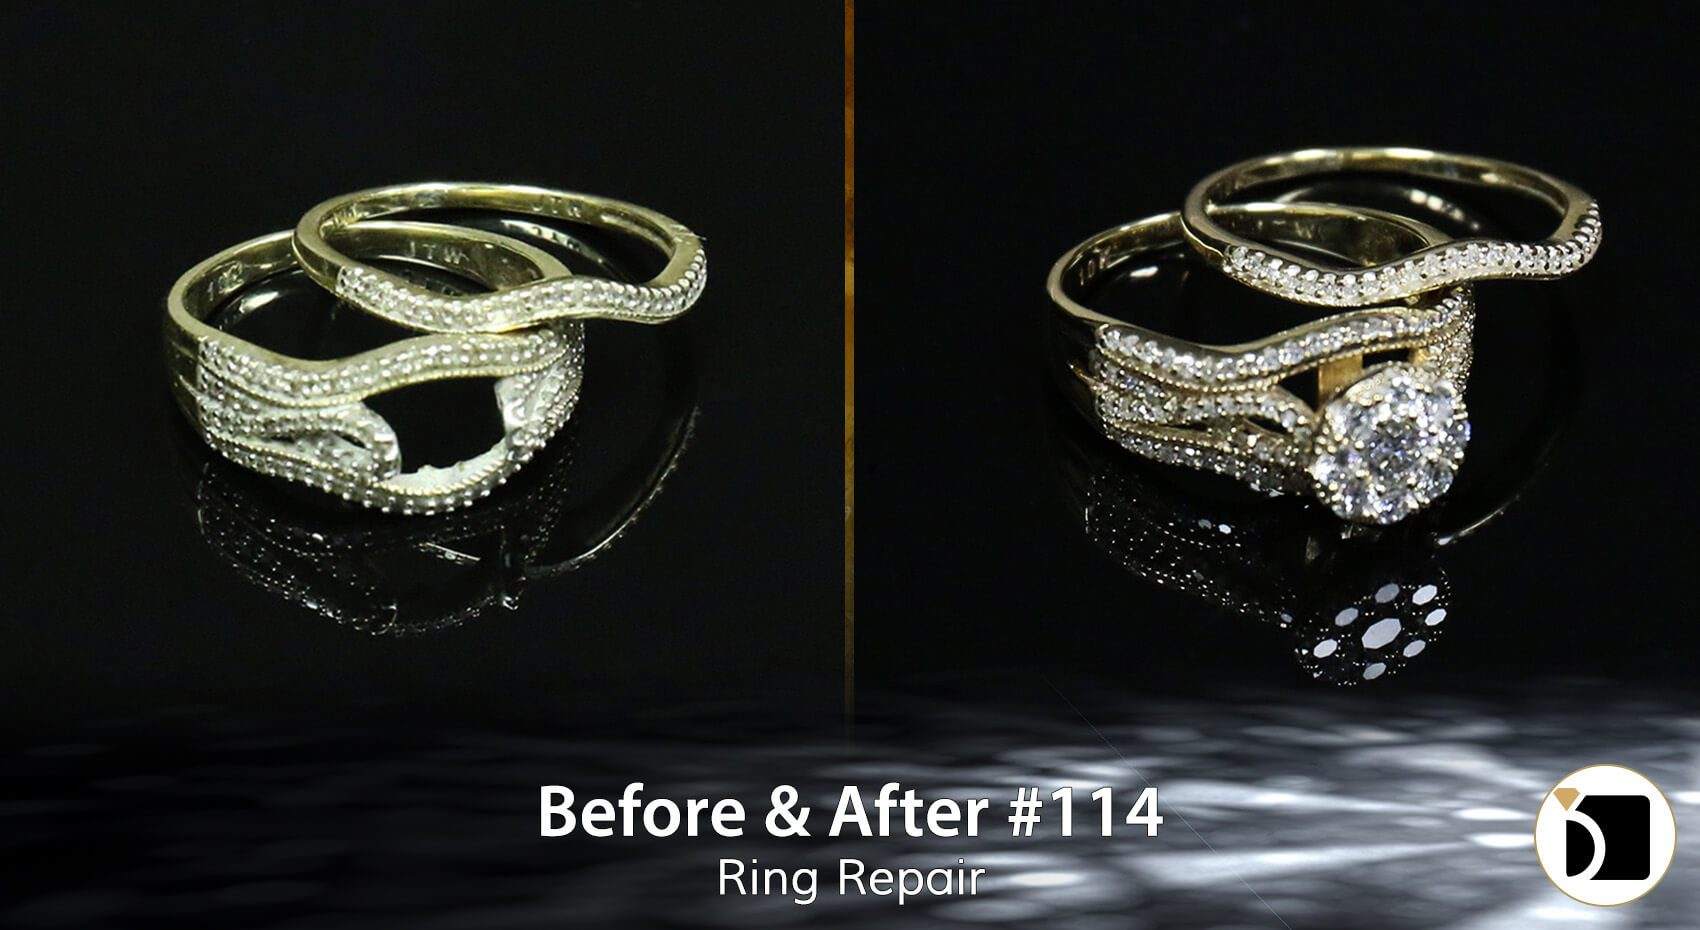 Image Showcasing a ring repair